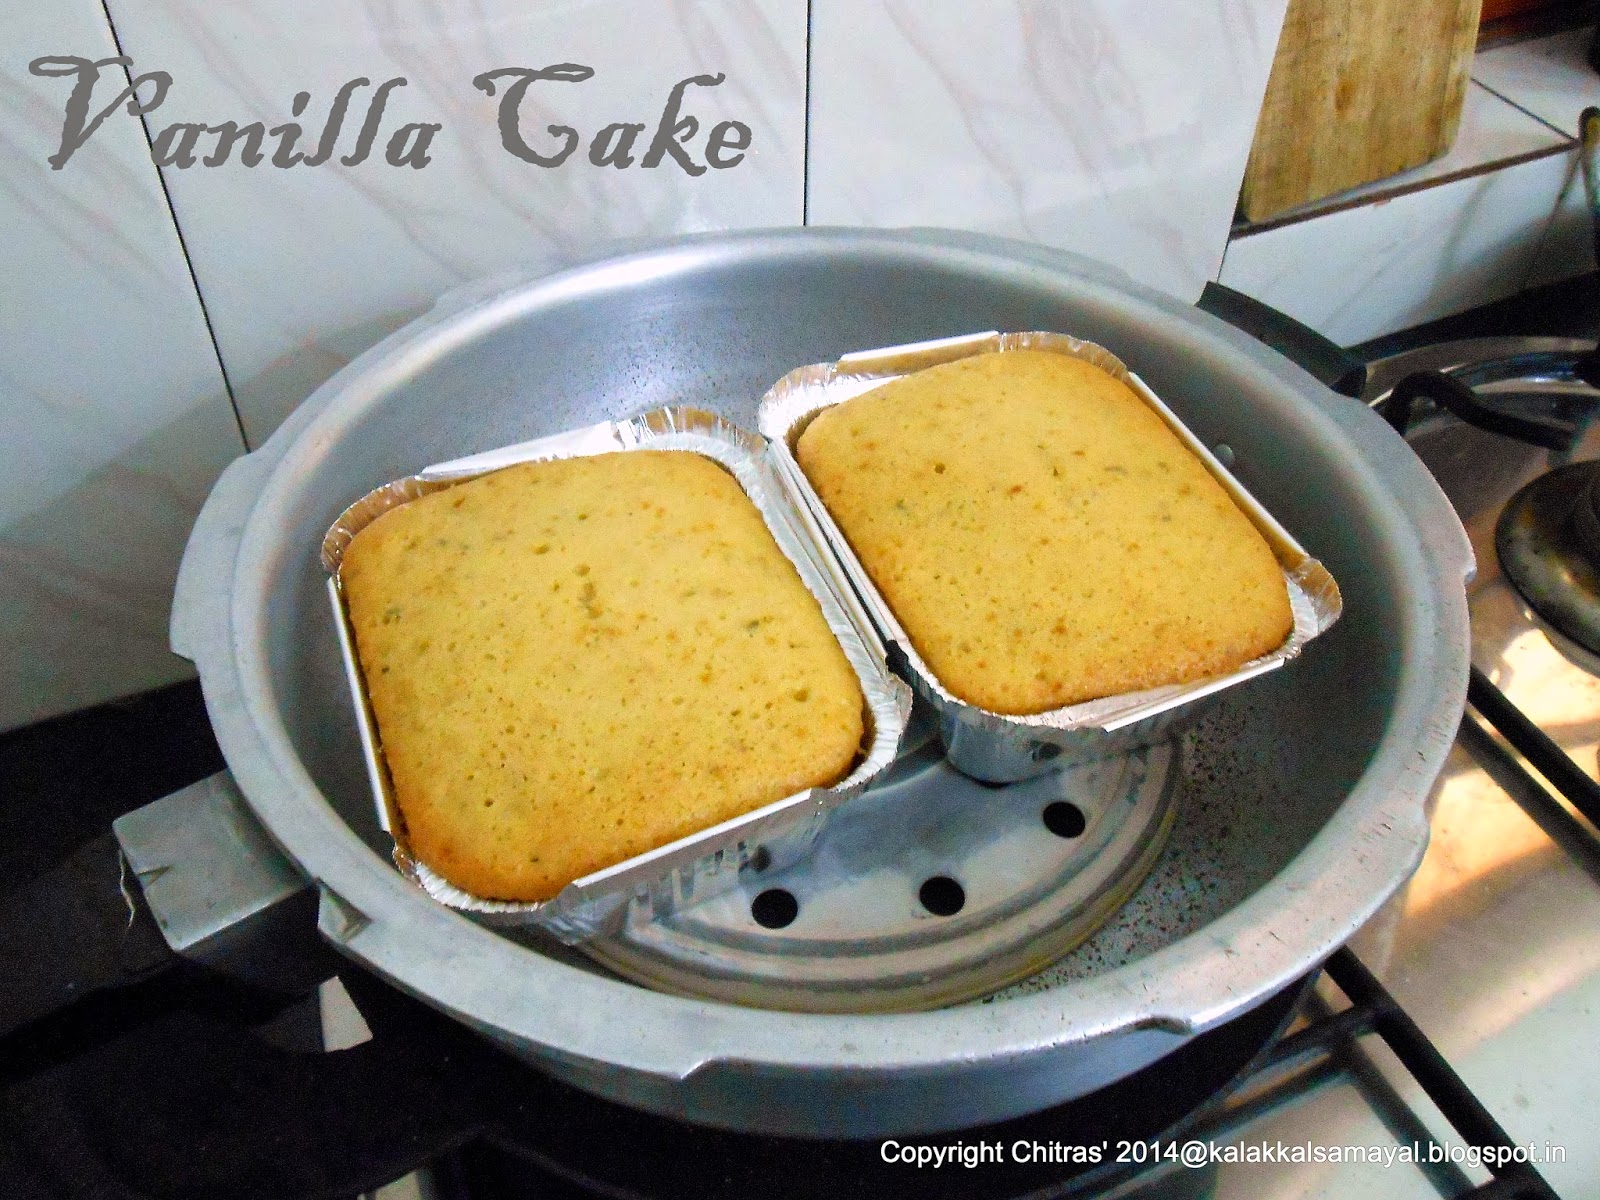 Vanilla cake ready to take out of the cooker